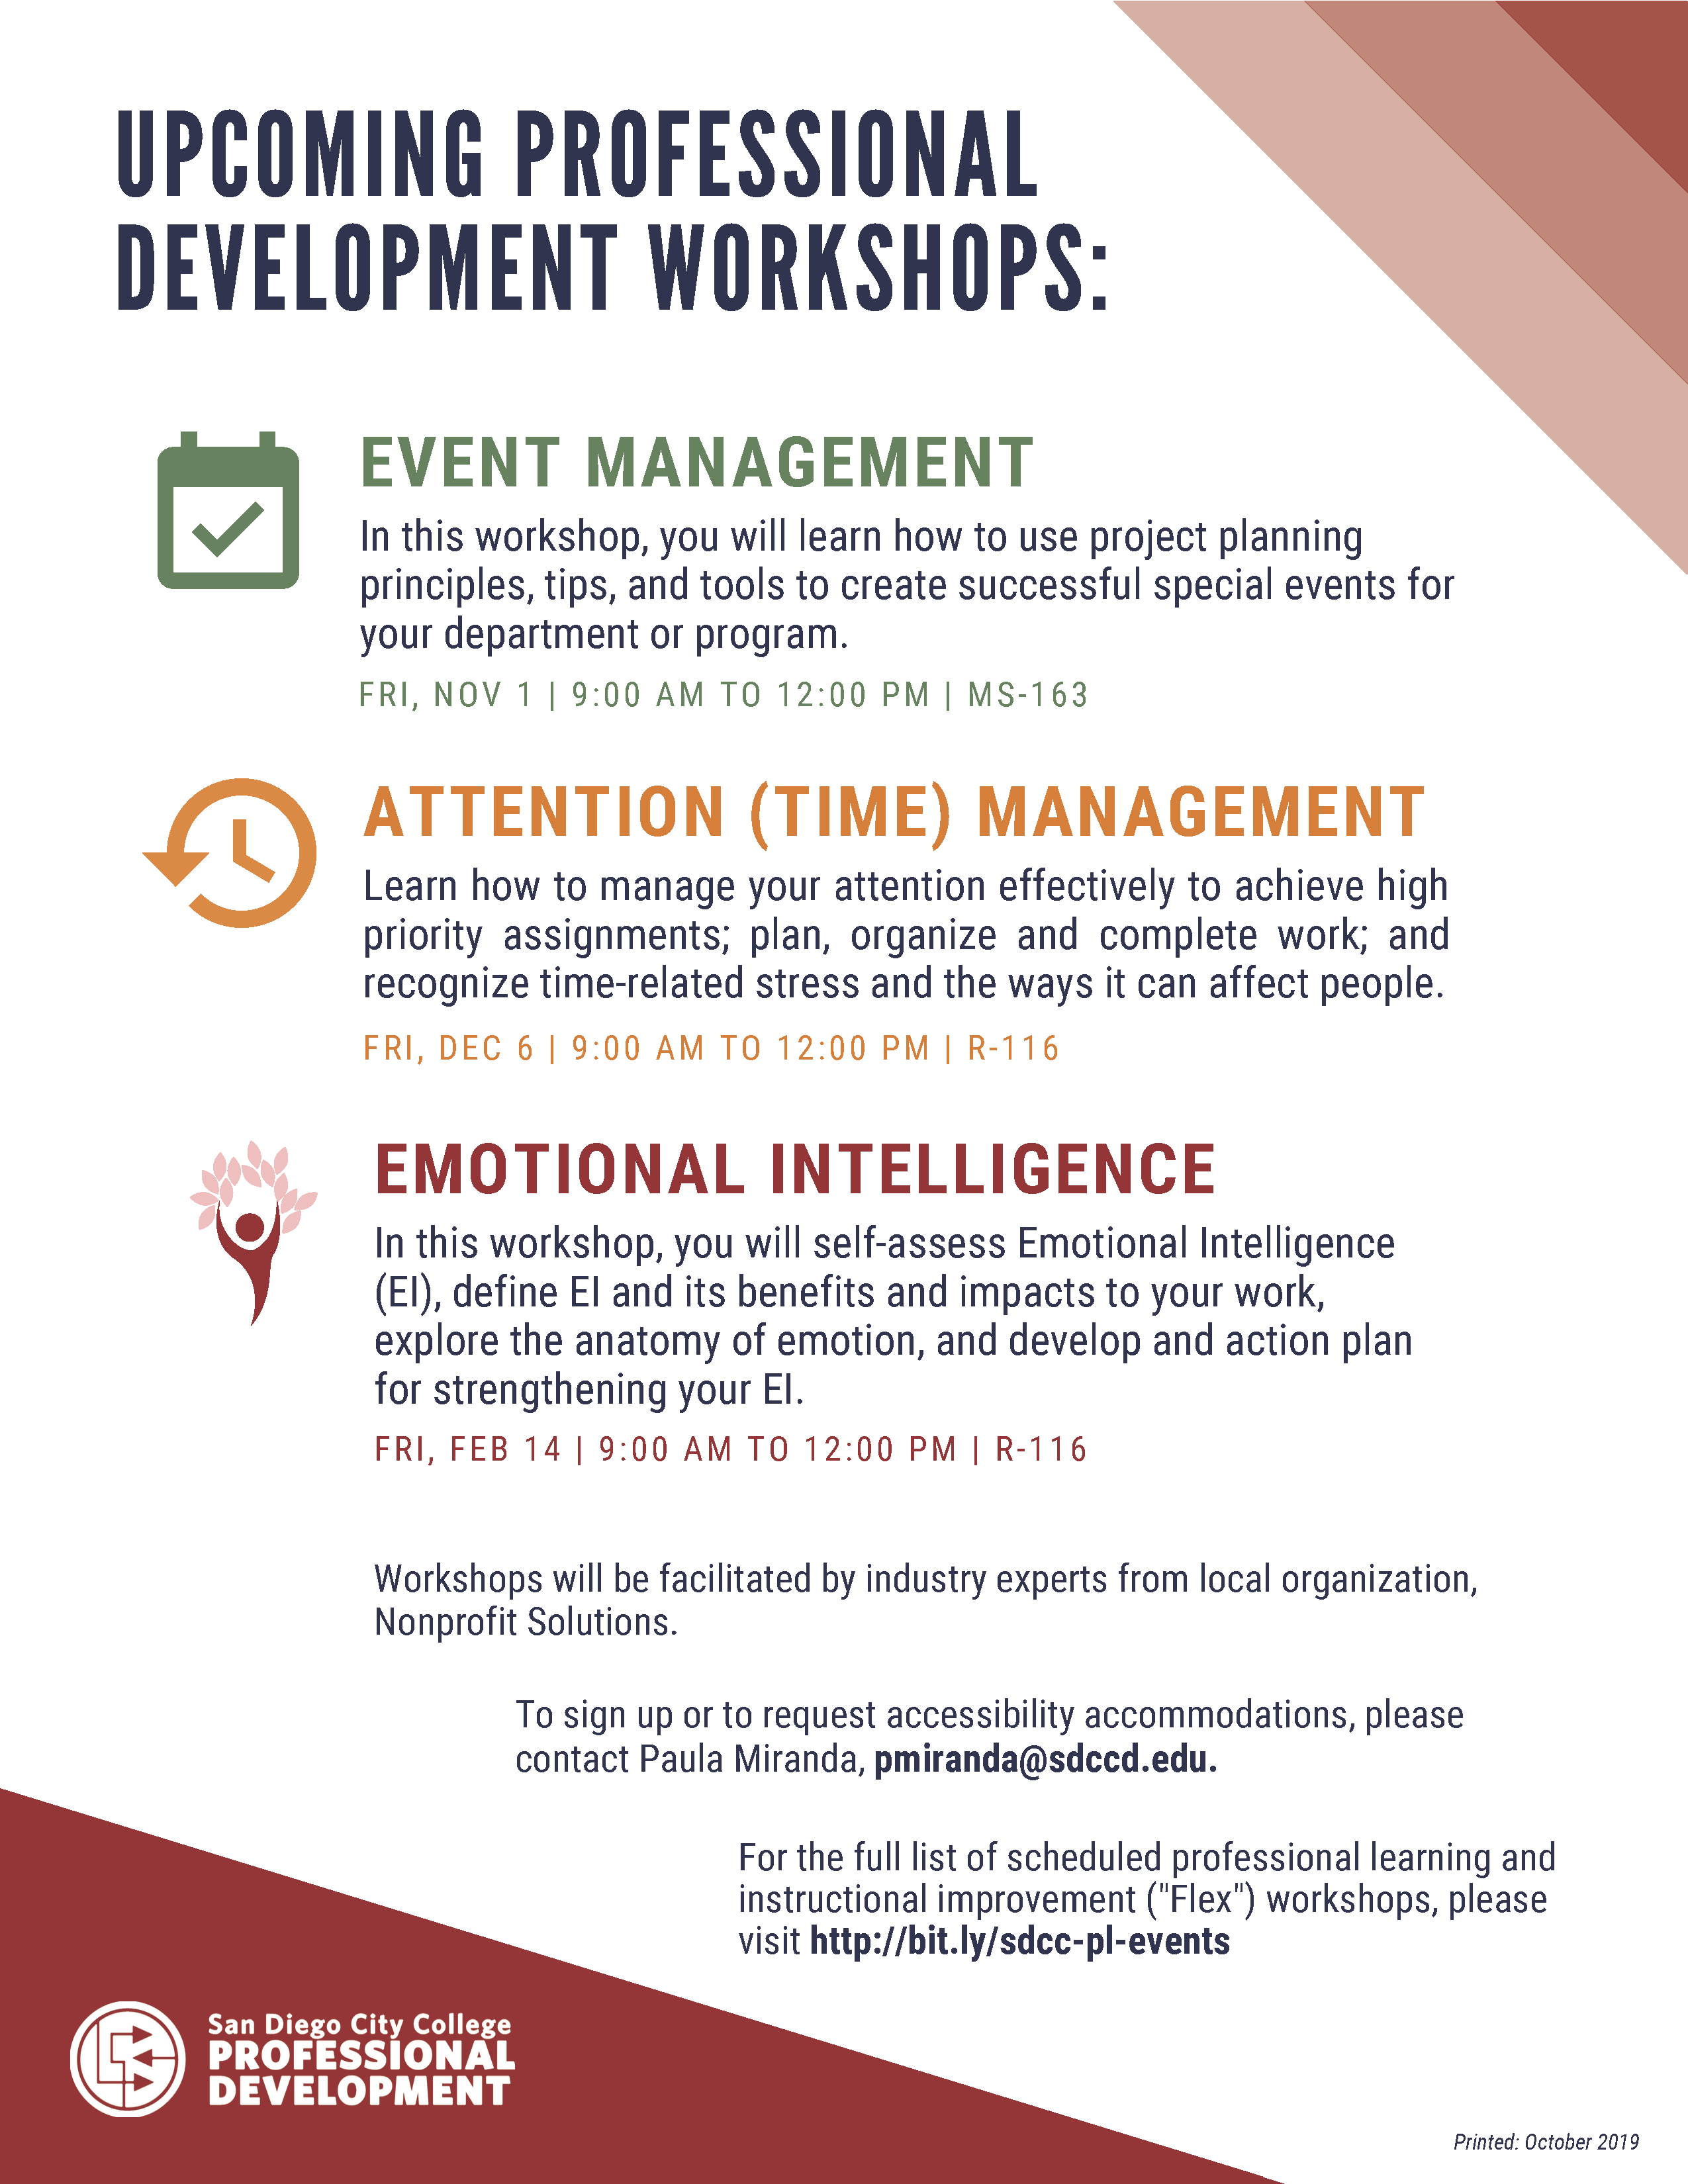 FLYER - Event, Attention (Time) Management; Emotional Intelligence